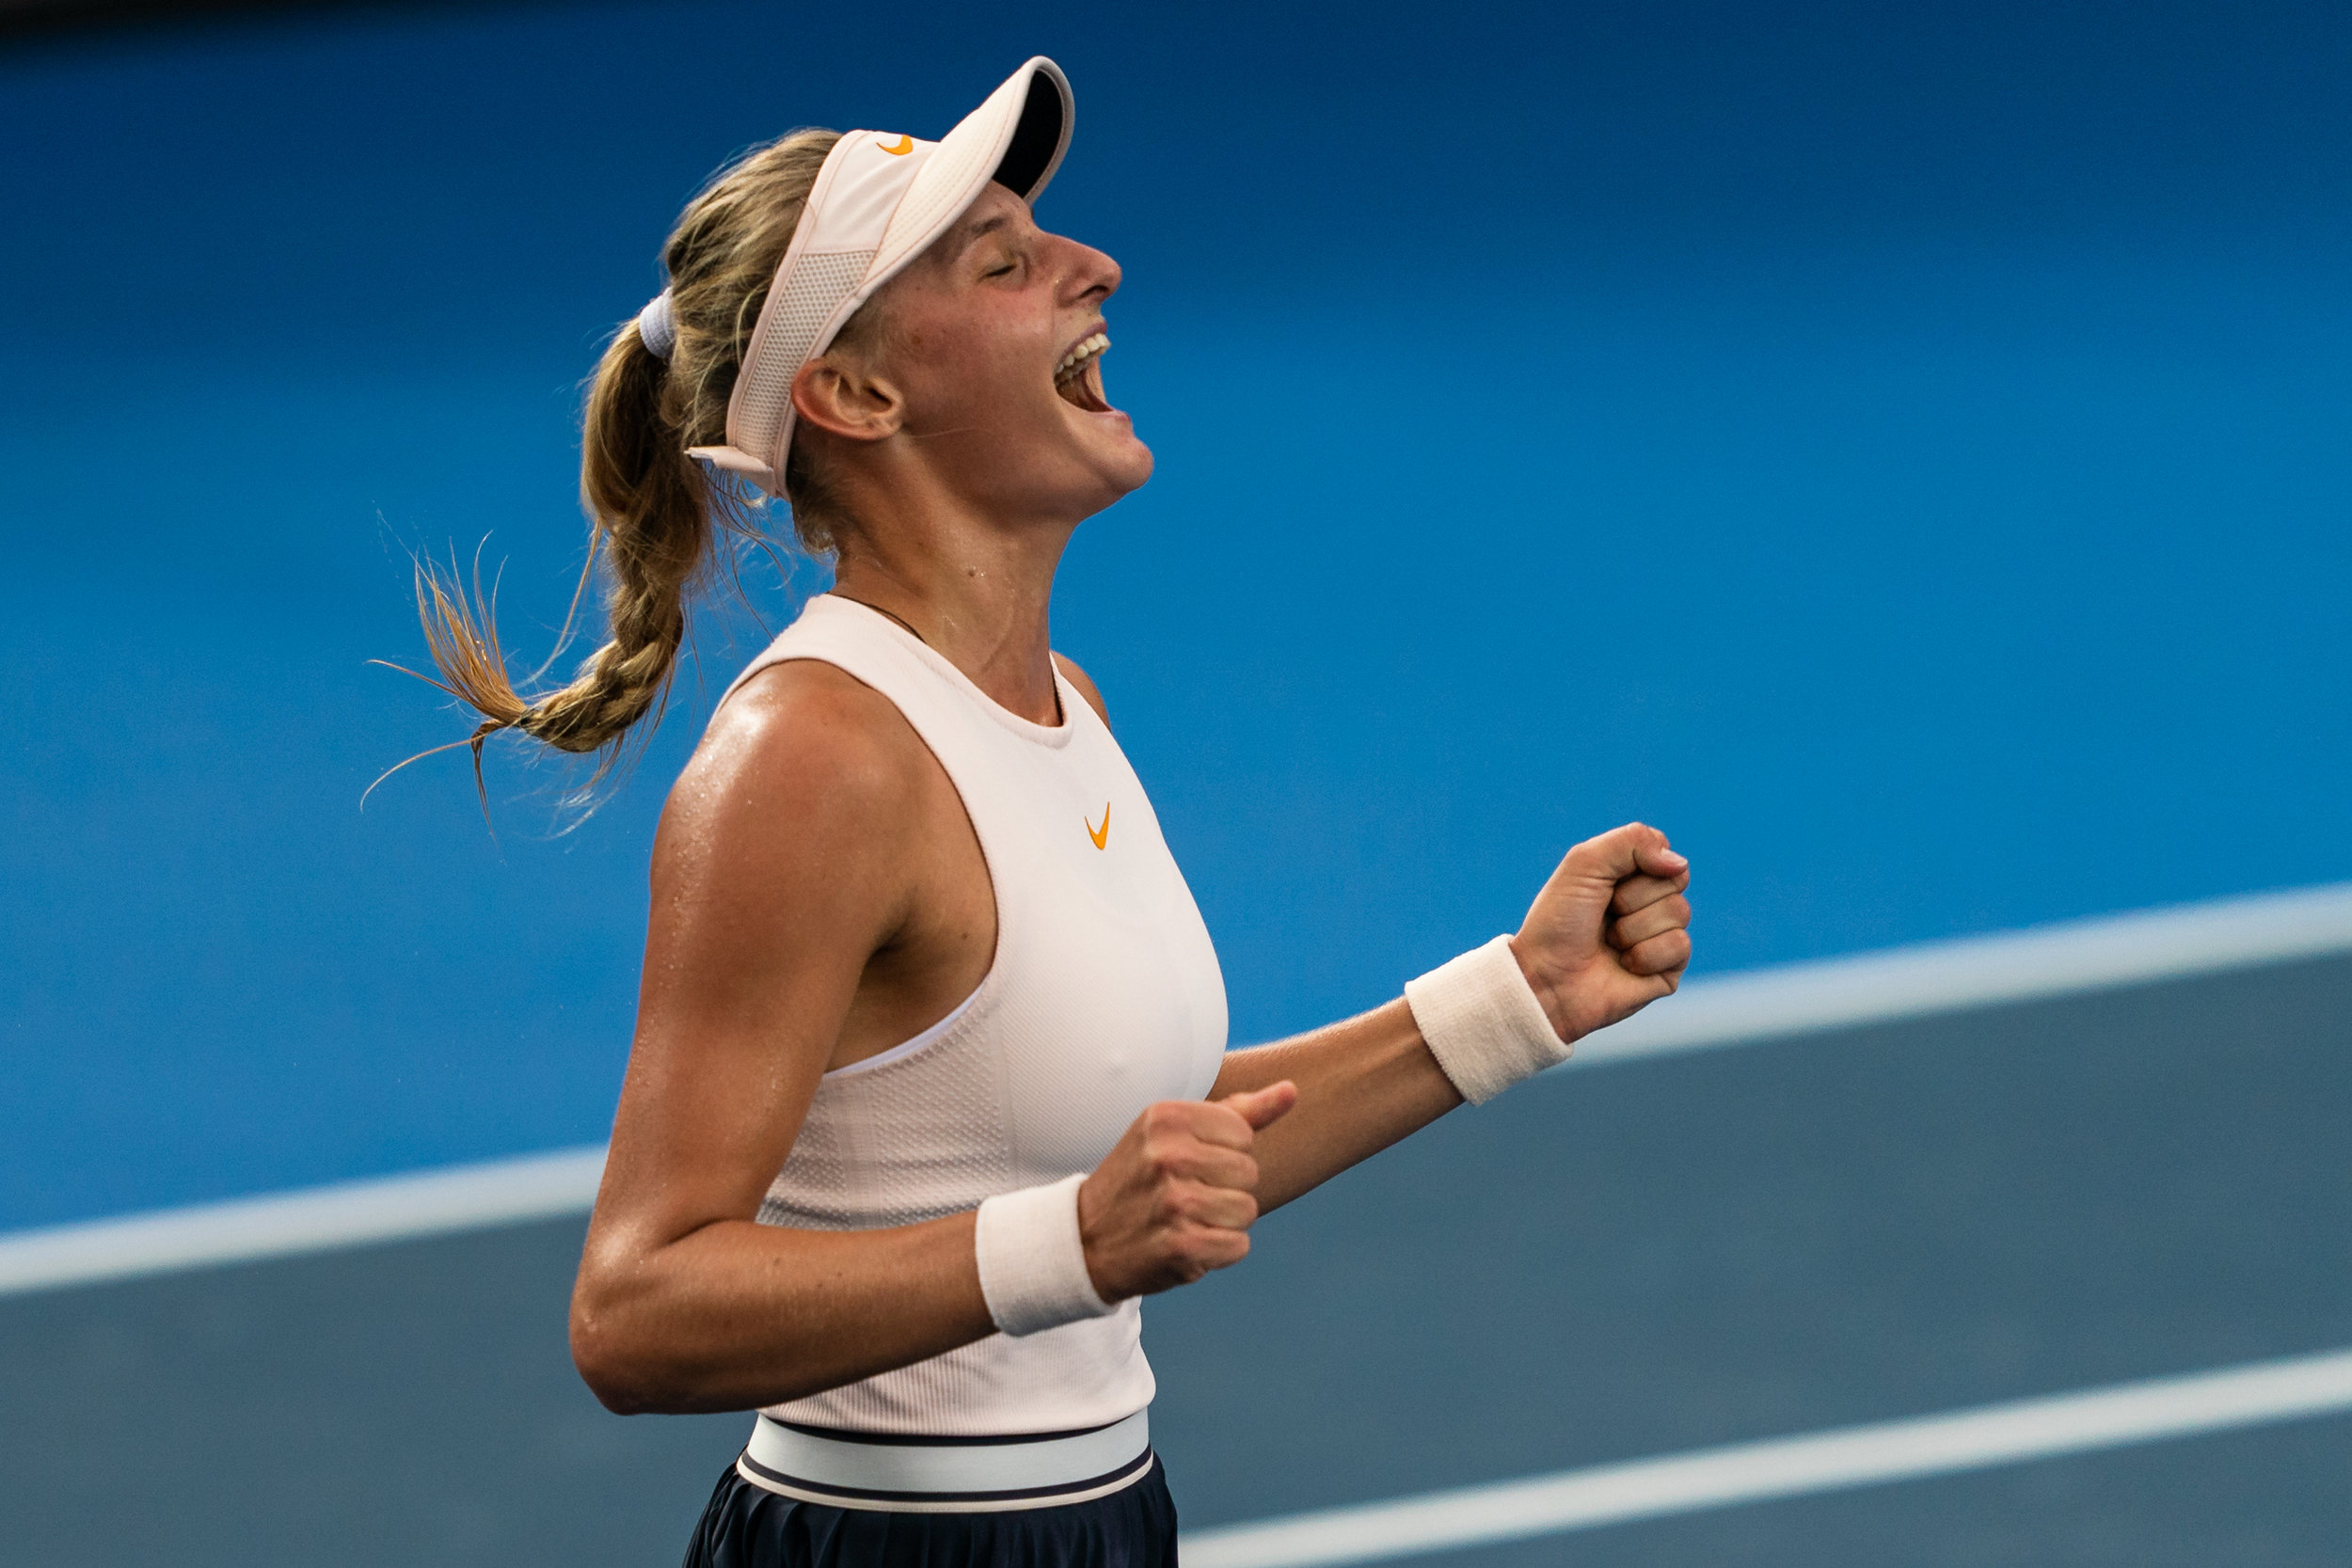 Dayana Yastremska, Prudential Hong Kong Tennis Open Champion 2018